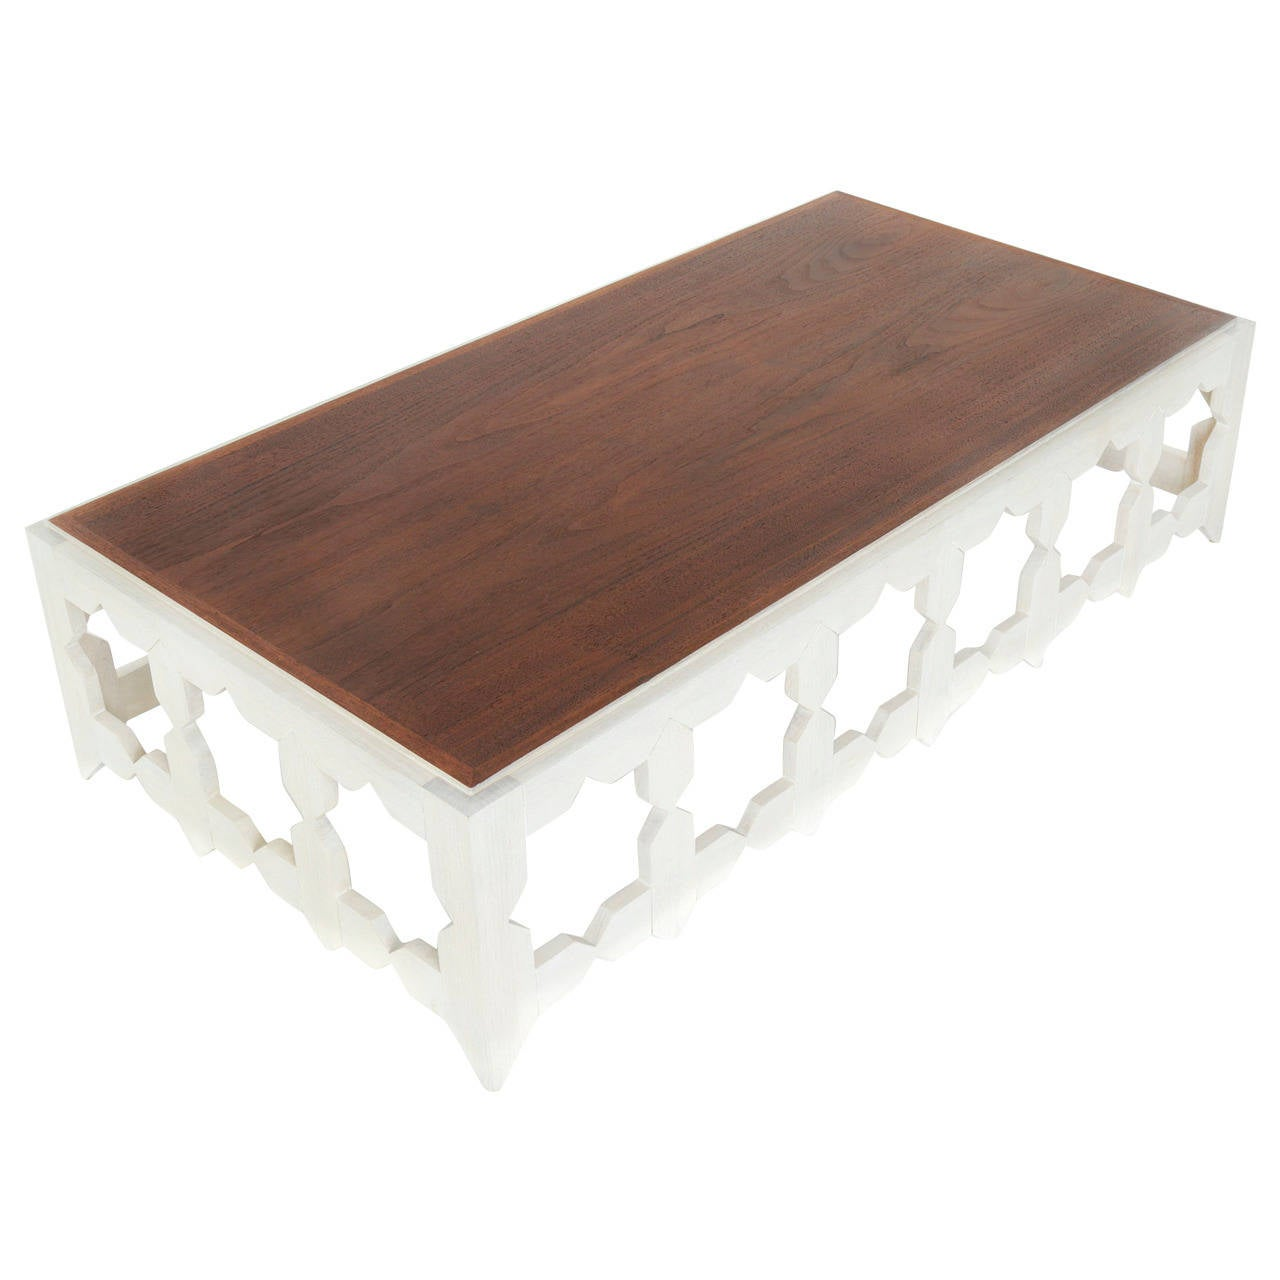 Harvey Probber Marble Top Rectangular Coffee Table W: Rectangular Walnut Coffee Table With Star Cut-Outs At 1stdibs